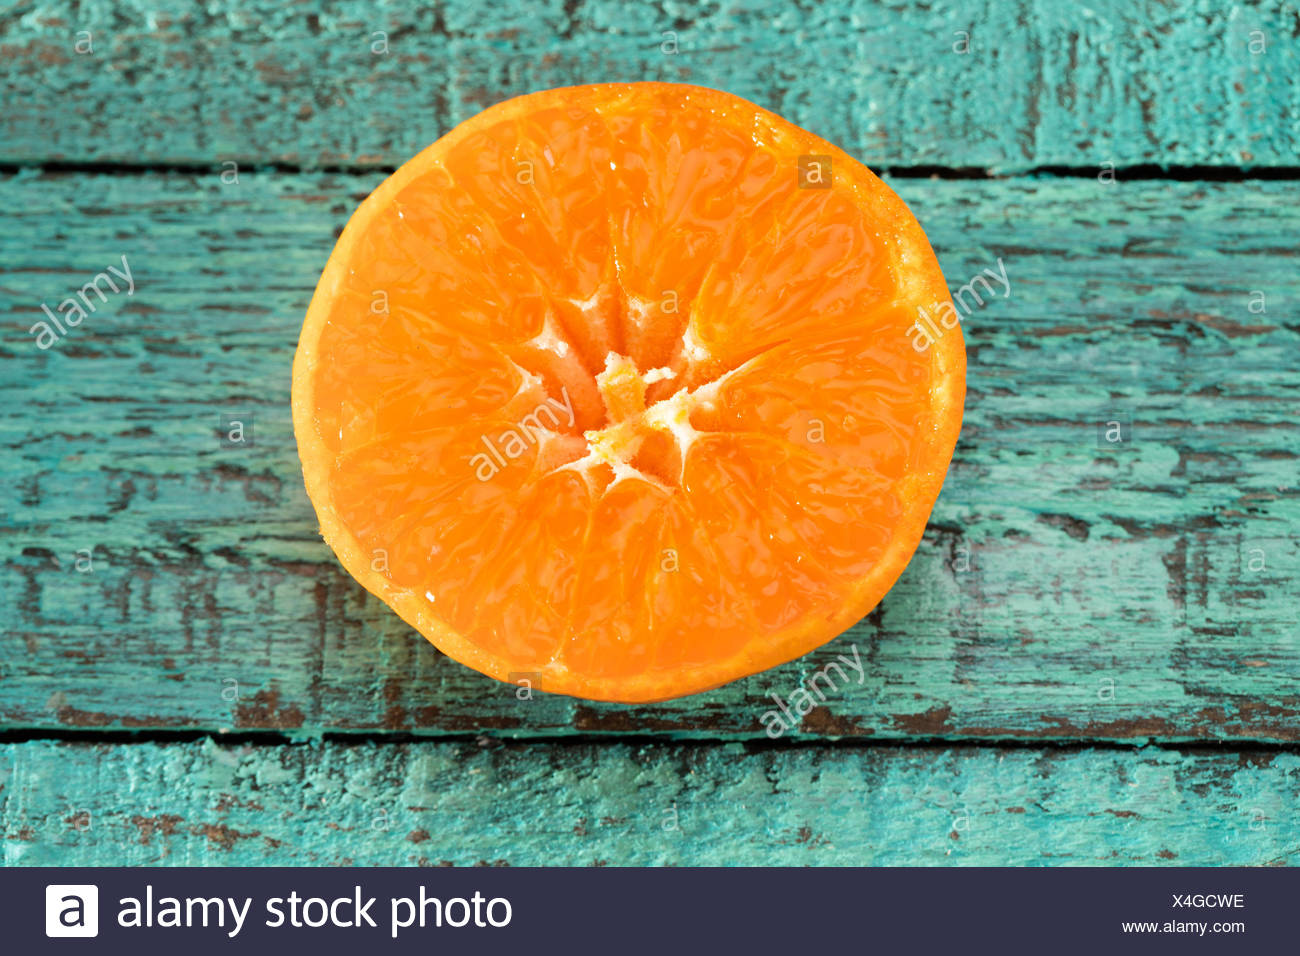 Close-up view of fresh orange slice on blue wooden table - Stock Image